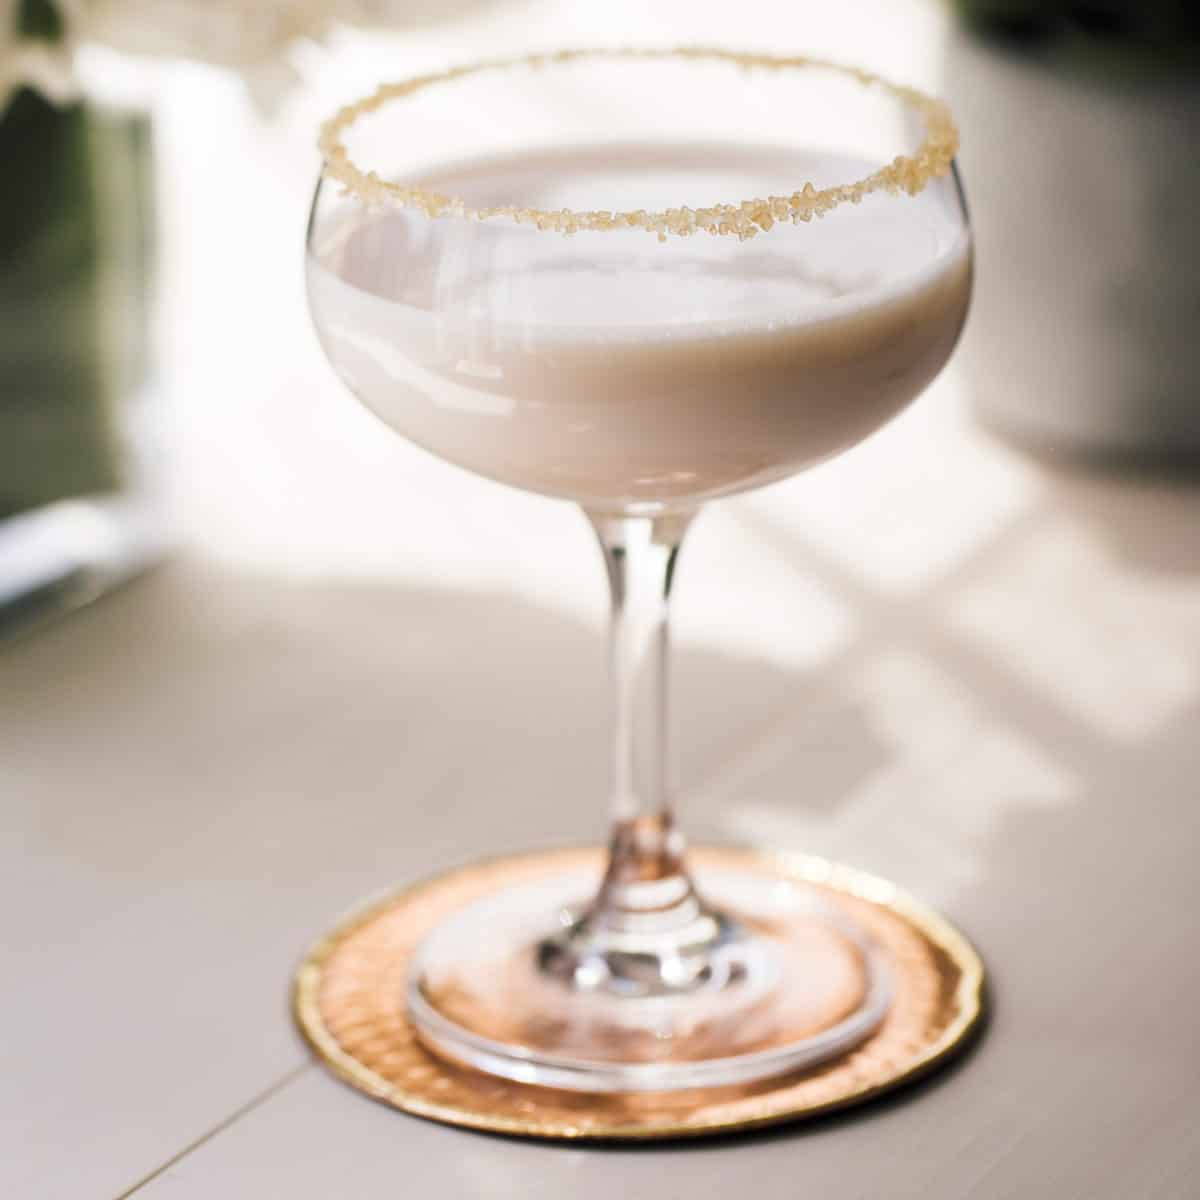 Baileys Sweet Harbor Mist Cocktail in a coupe glass.